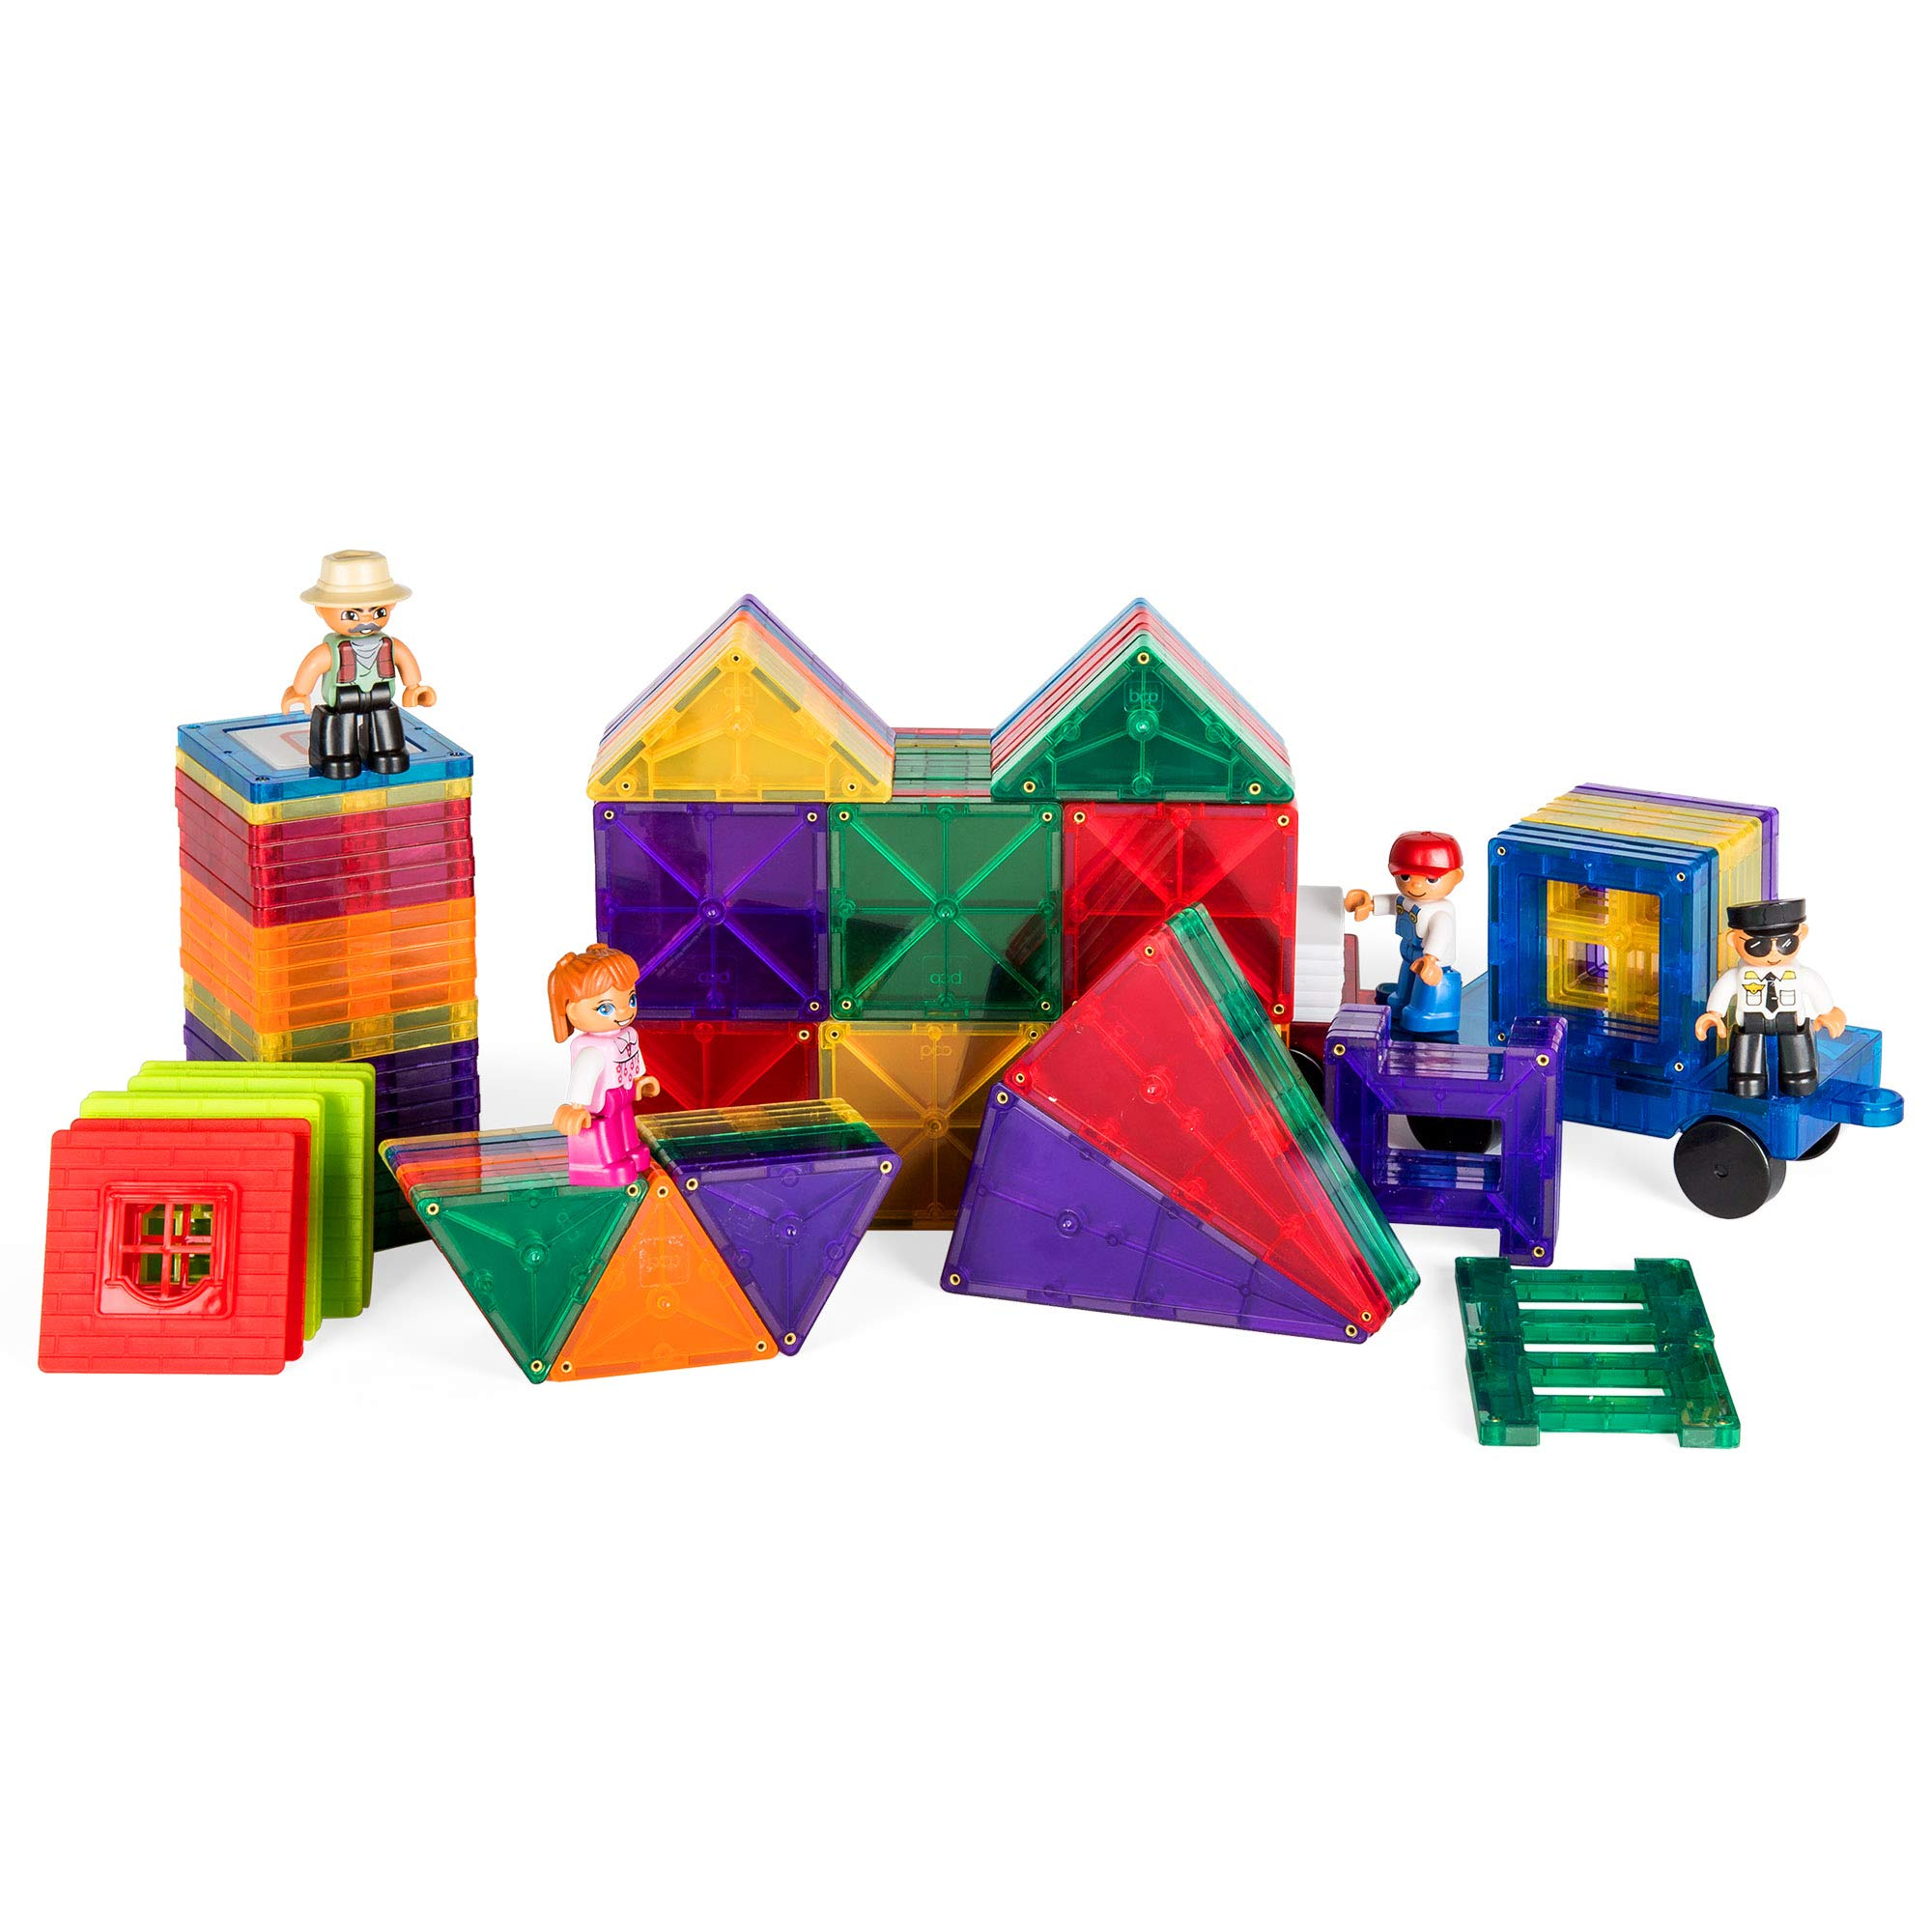 Best Choice Products 250-Piece Kids Educational STEM Rainbow Geometric 3D Magnetic Building Block Tile Toy Play Set w/ Railroad Tracks, 4 Action Figures, 4 Mini Train Carts, ABC Stickers by Best Choice Products (Image #5)